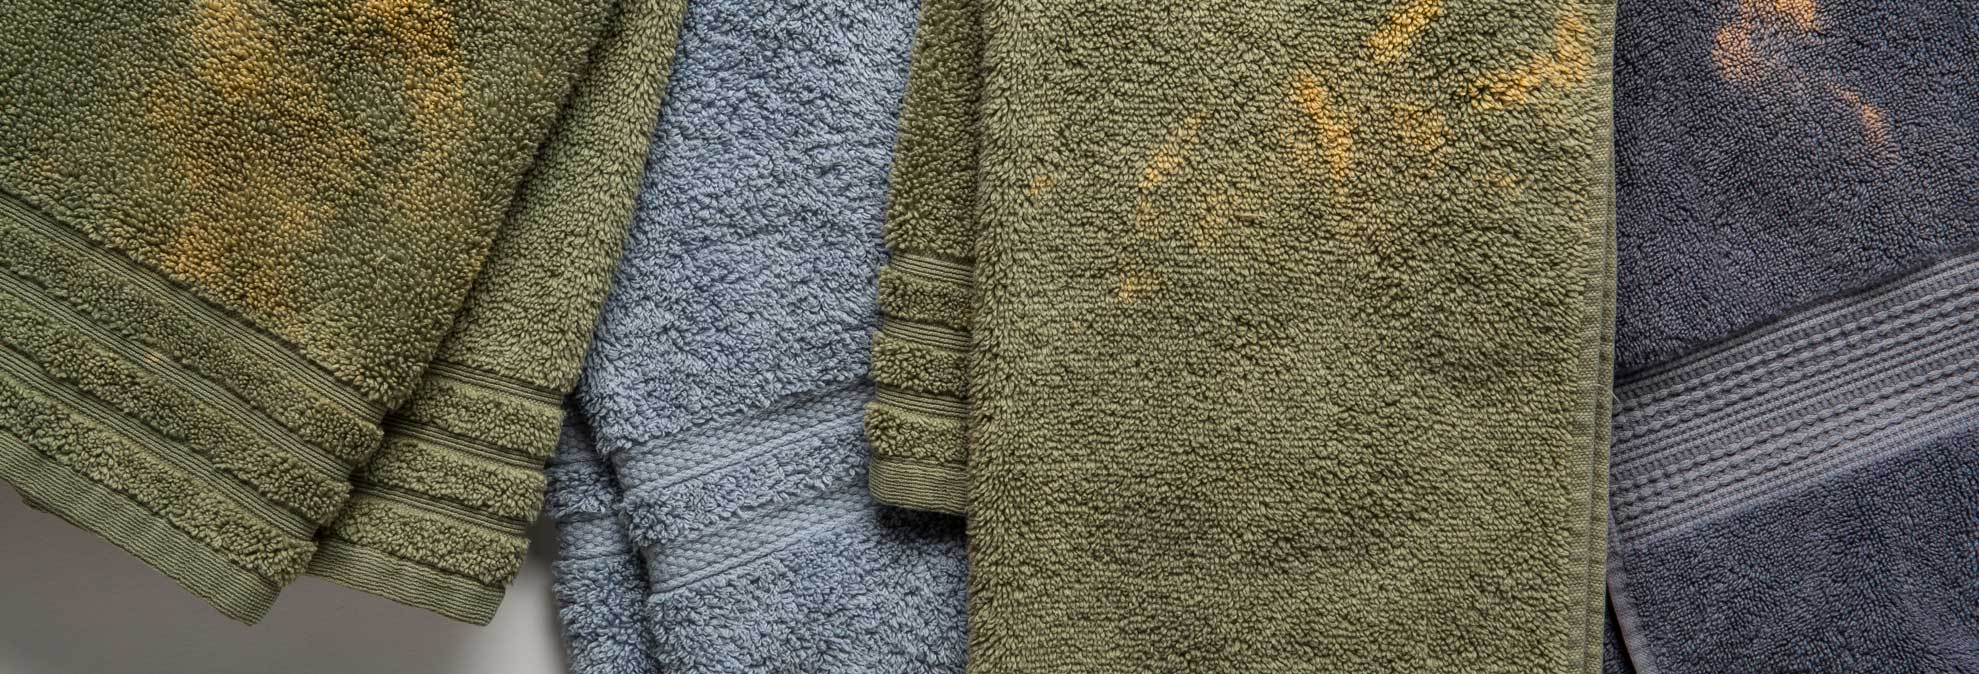 Towels That Resist Bleaching From Benzoyl Peroxide